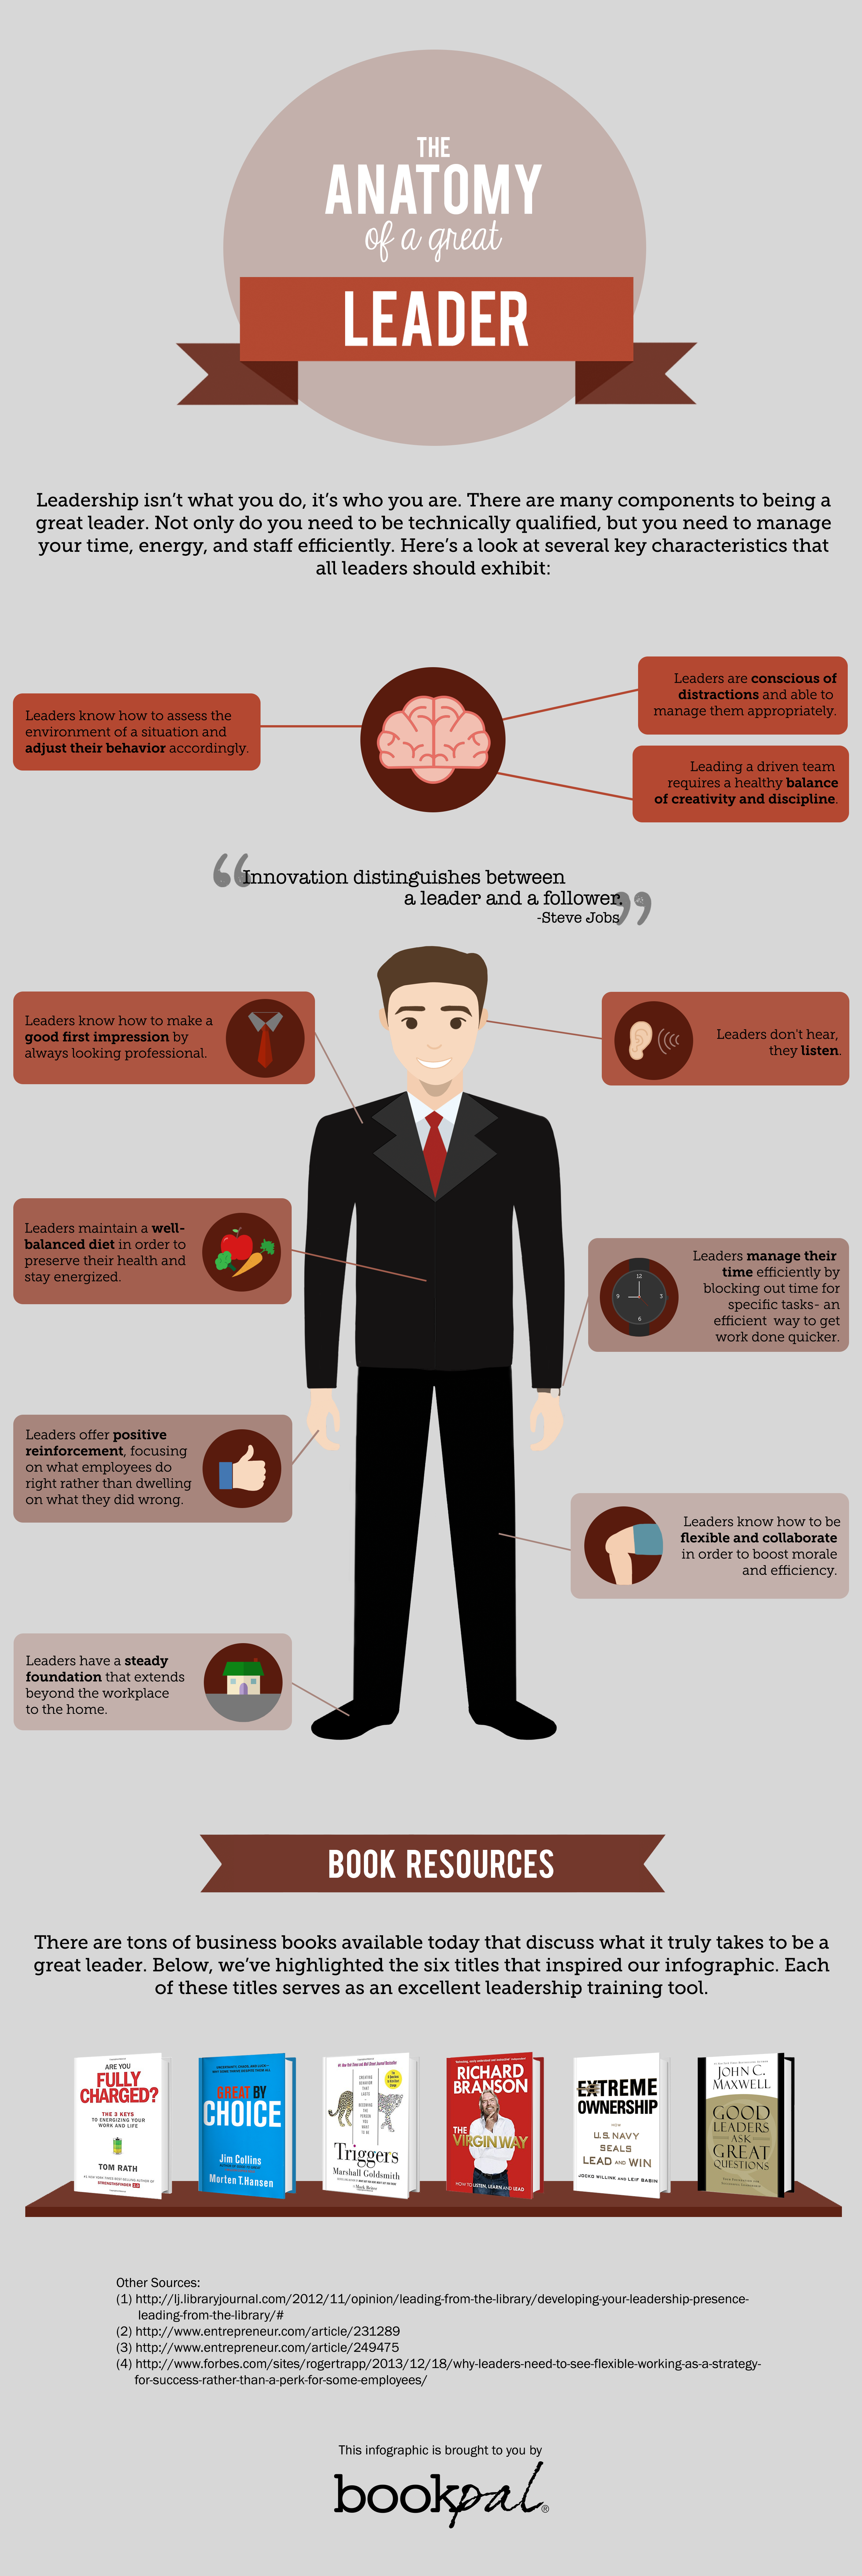 Anatomy-of-a-Leader-Infographic-6